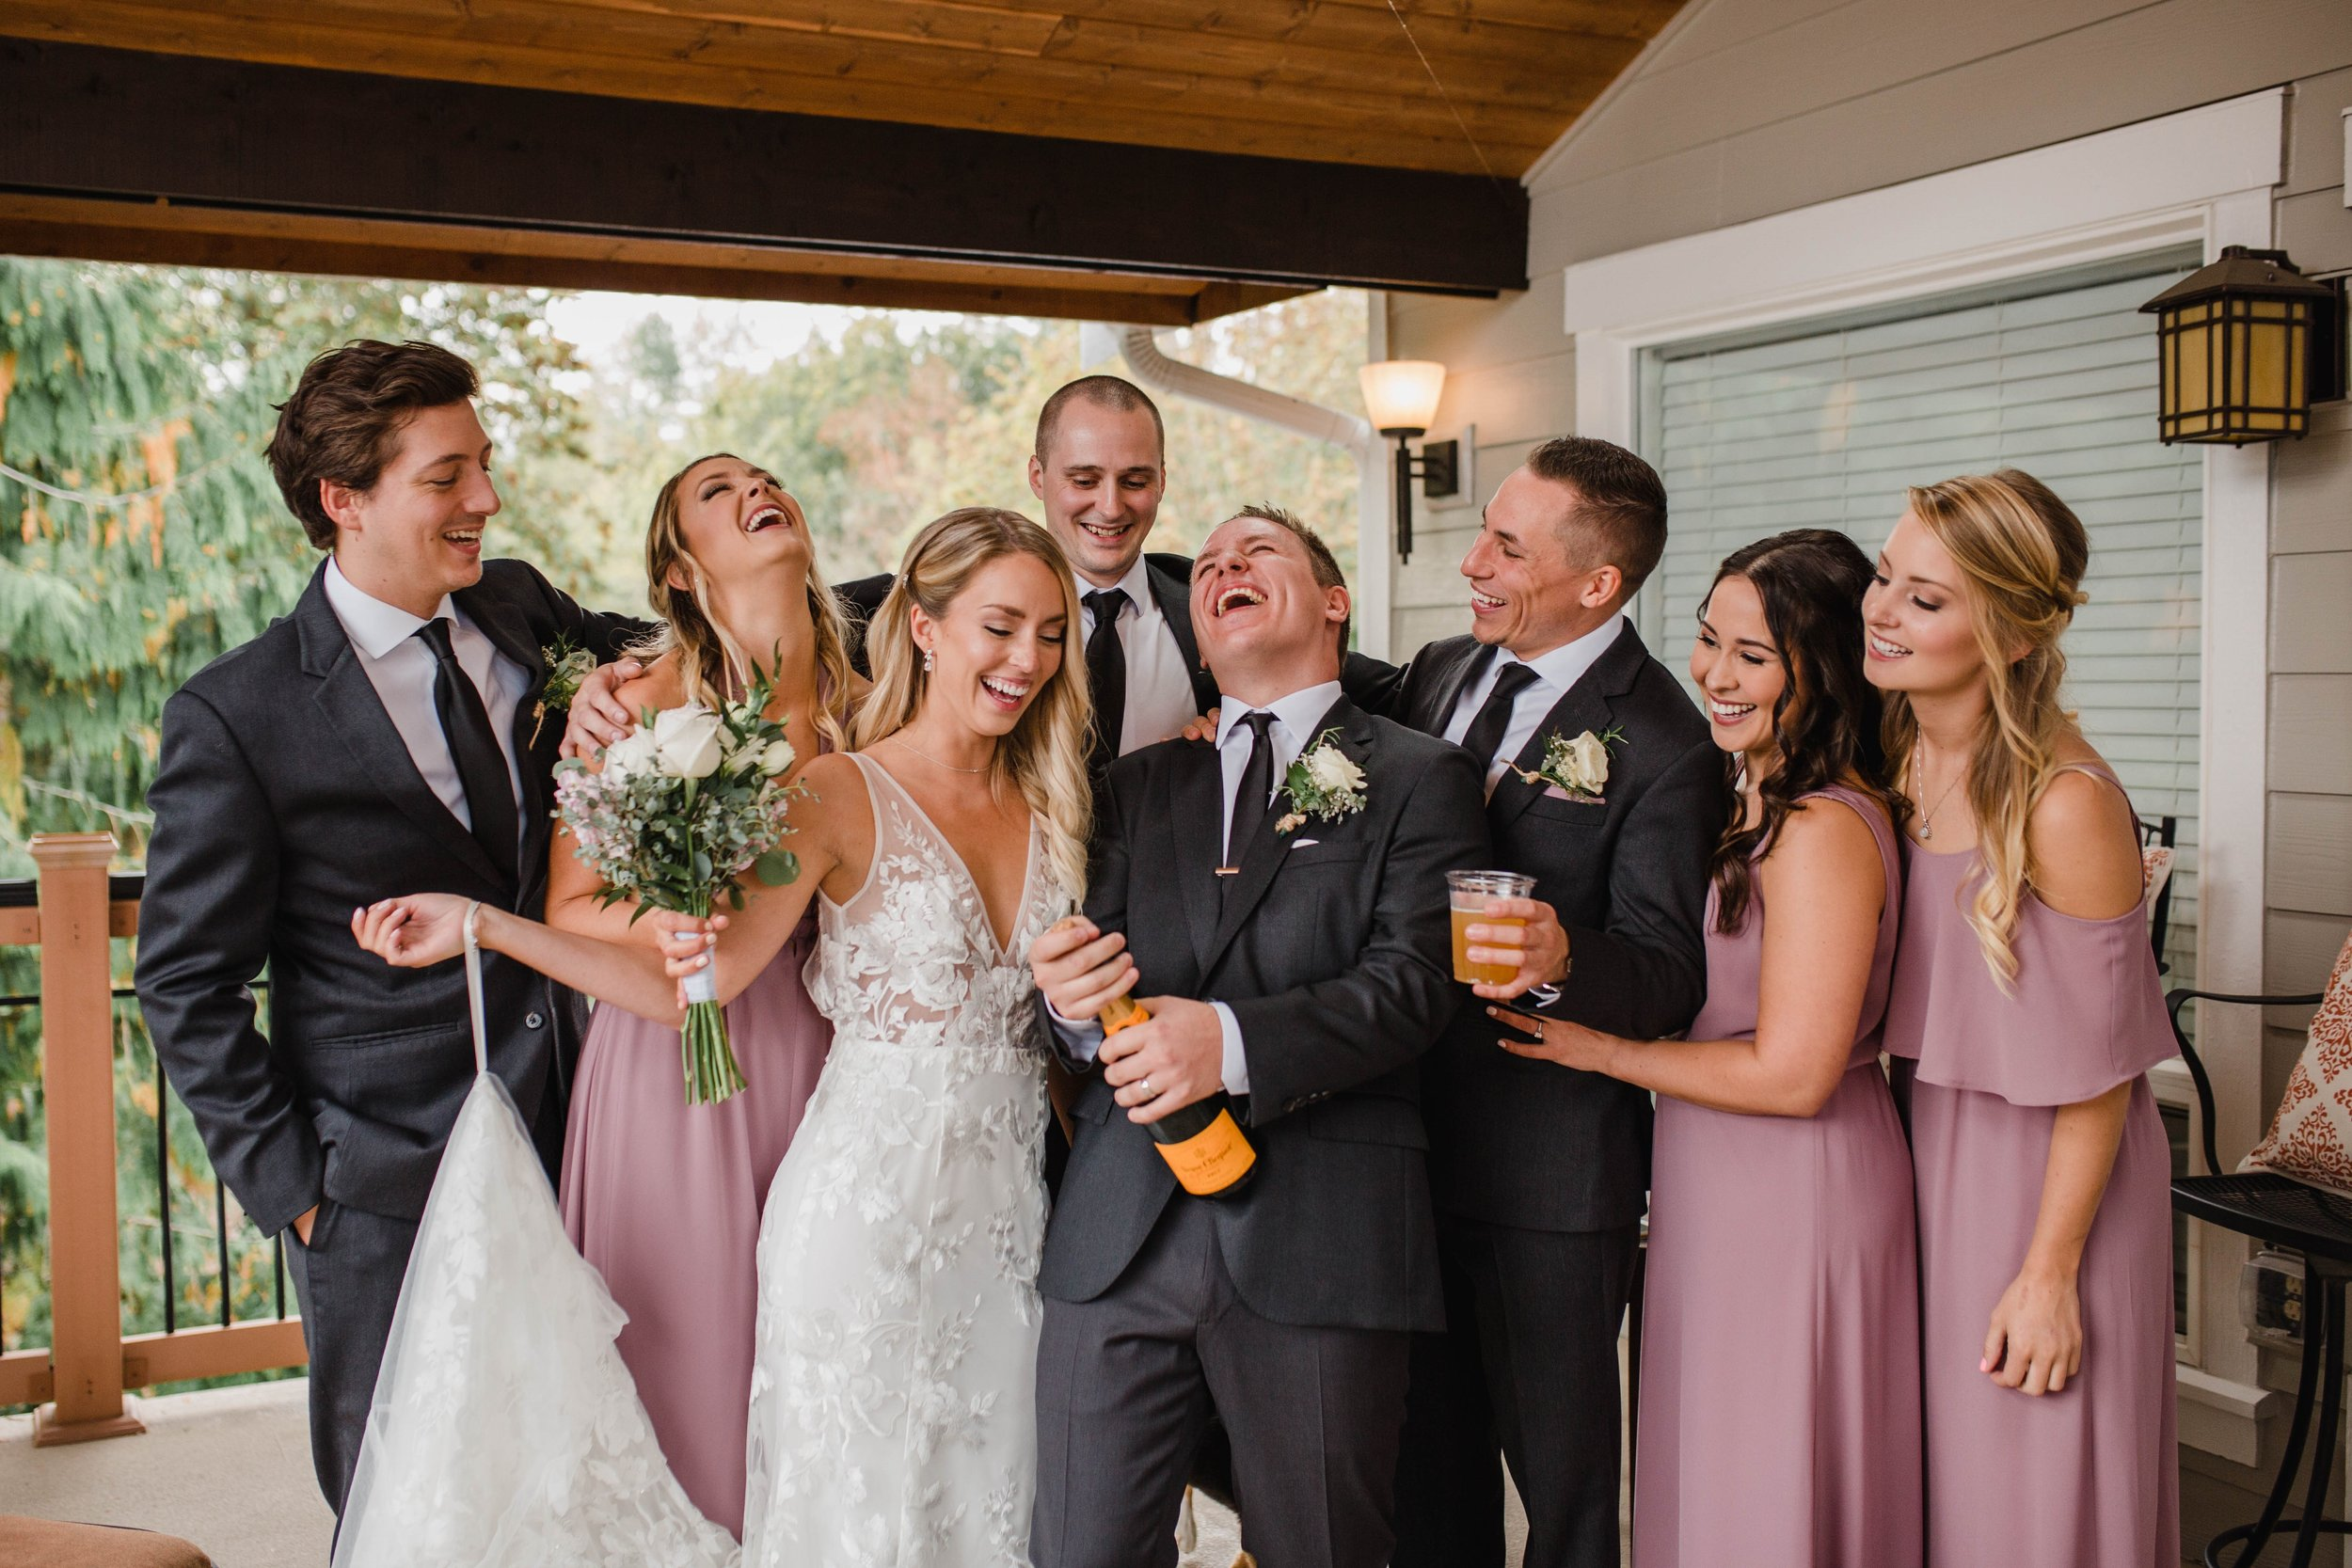 Ashley + Codey Reception - Sarah Gonia Photography (44 of 272).jpg